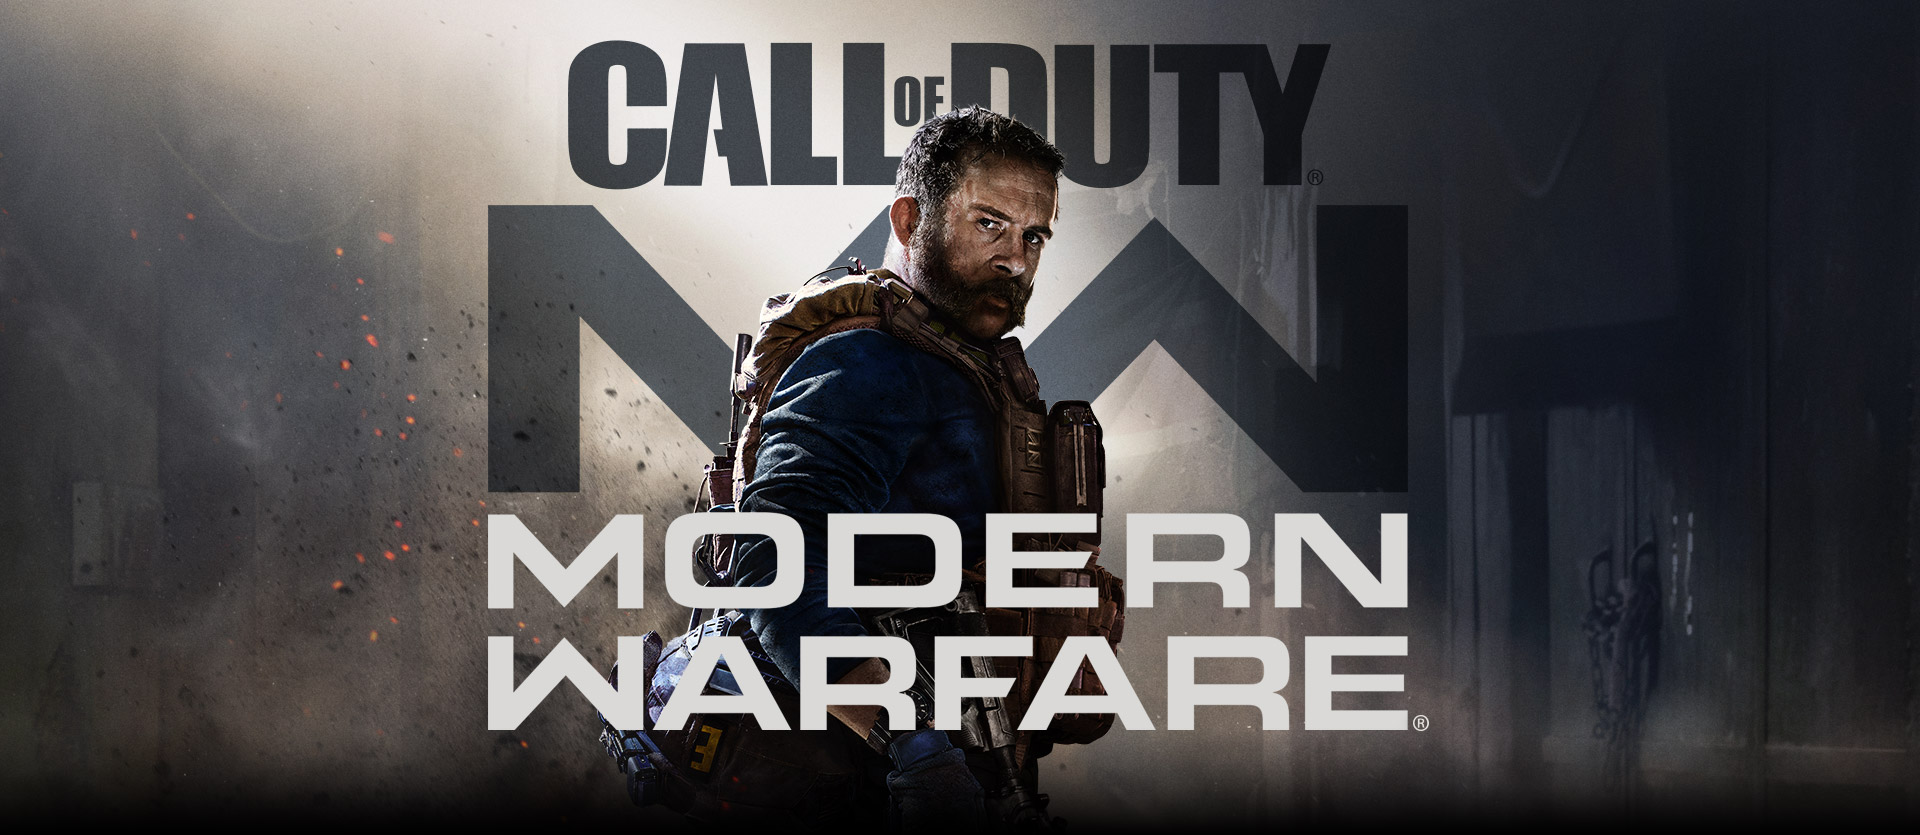 Call of Duty: Modern Warfare-Logo mit Charakter Captain Price in blau mit Militärweste